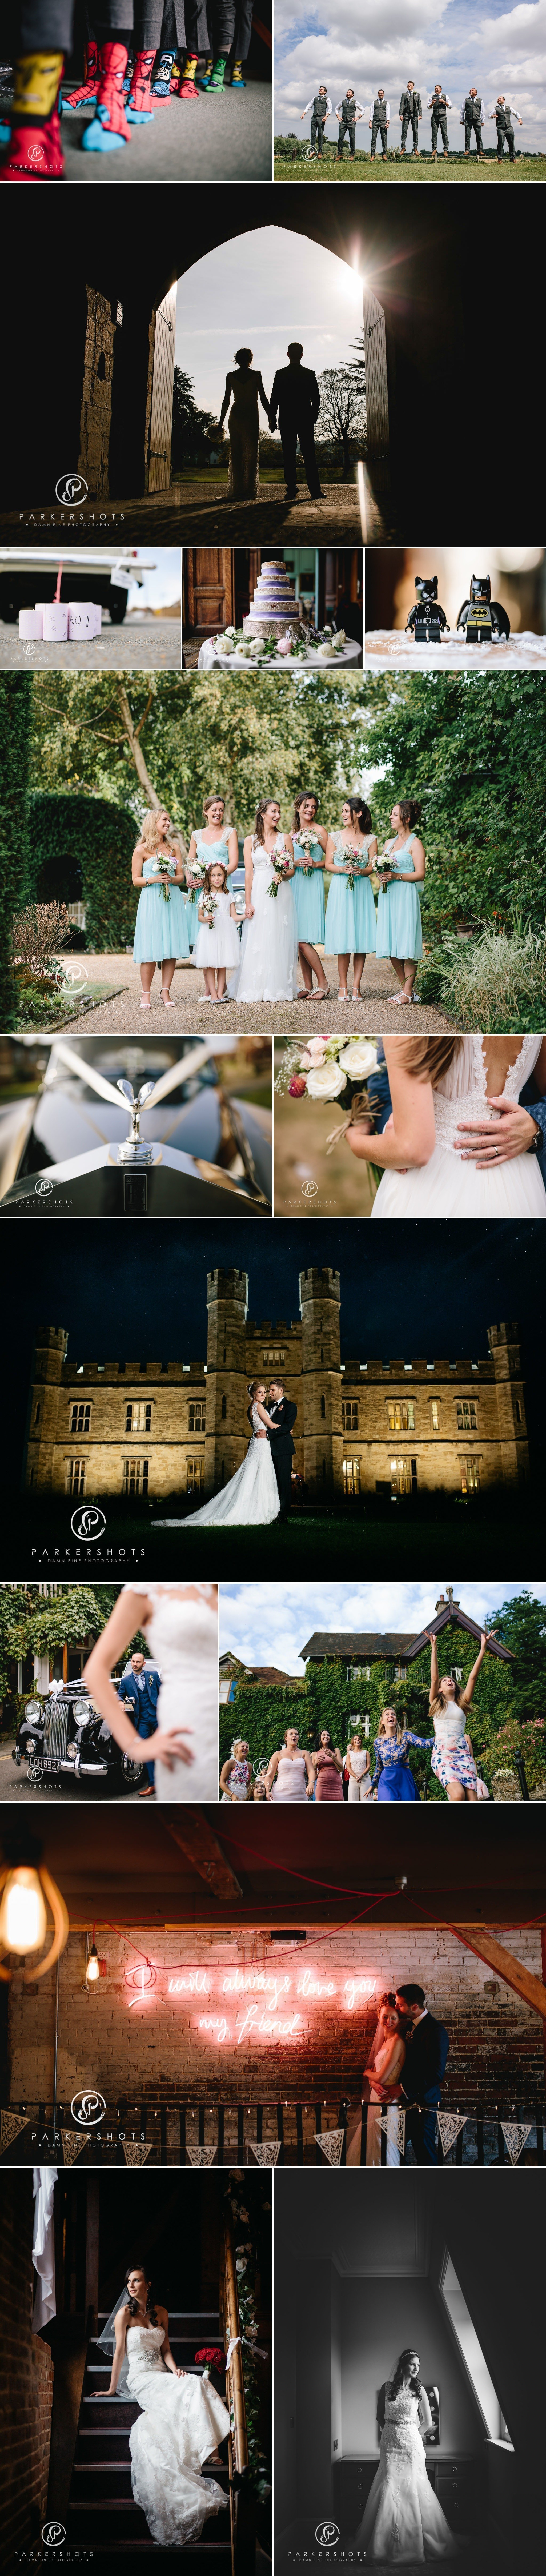 Best wedding photography 2016 8